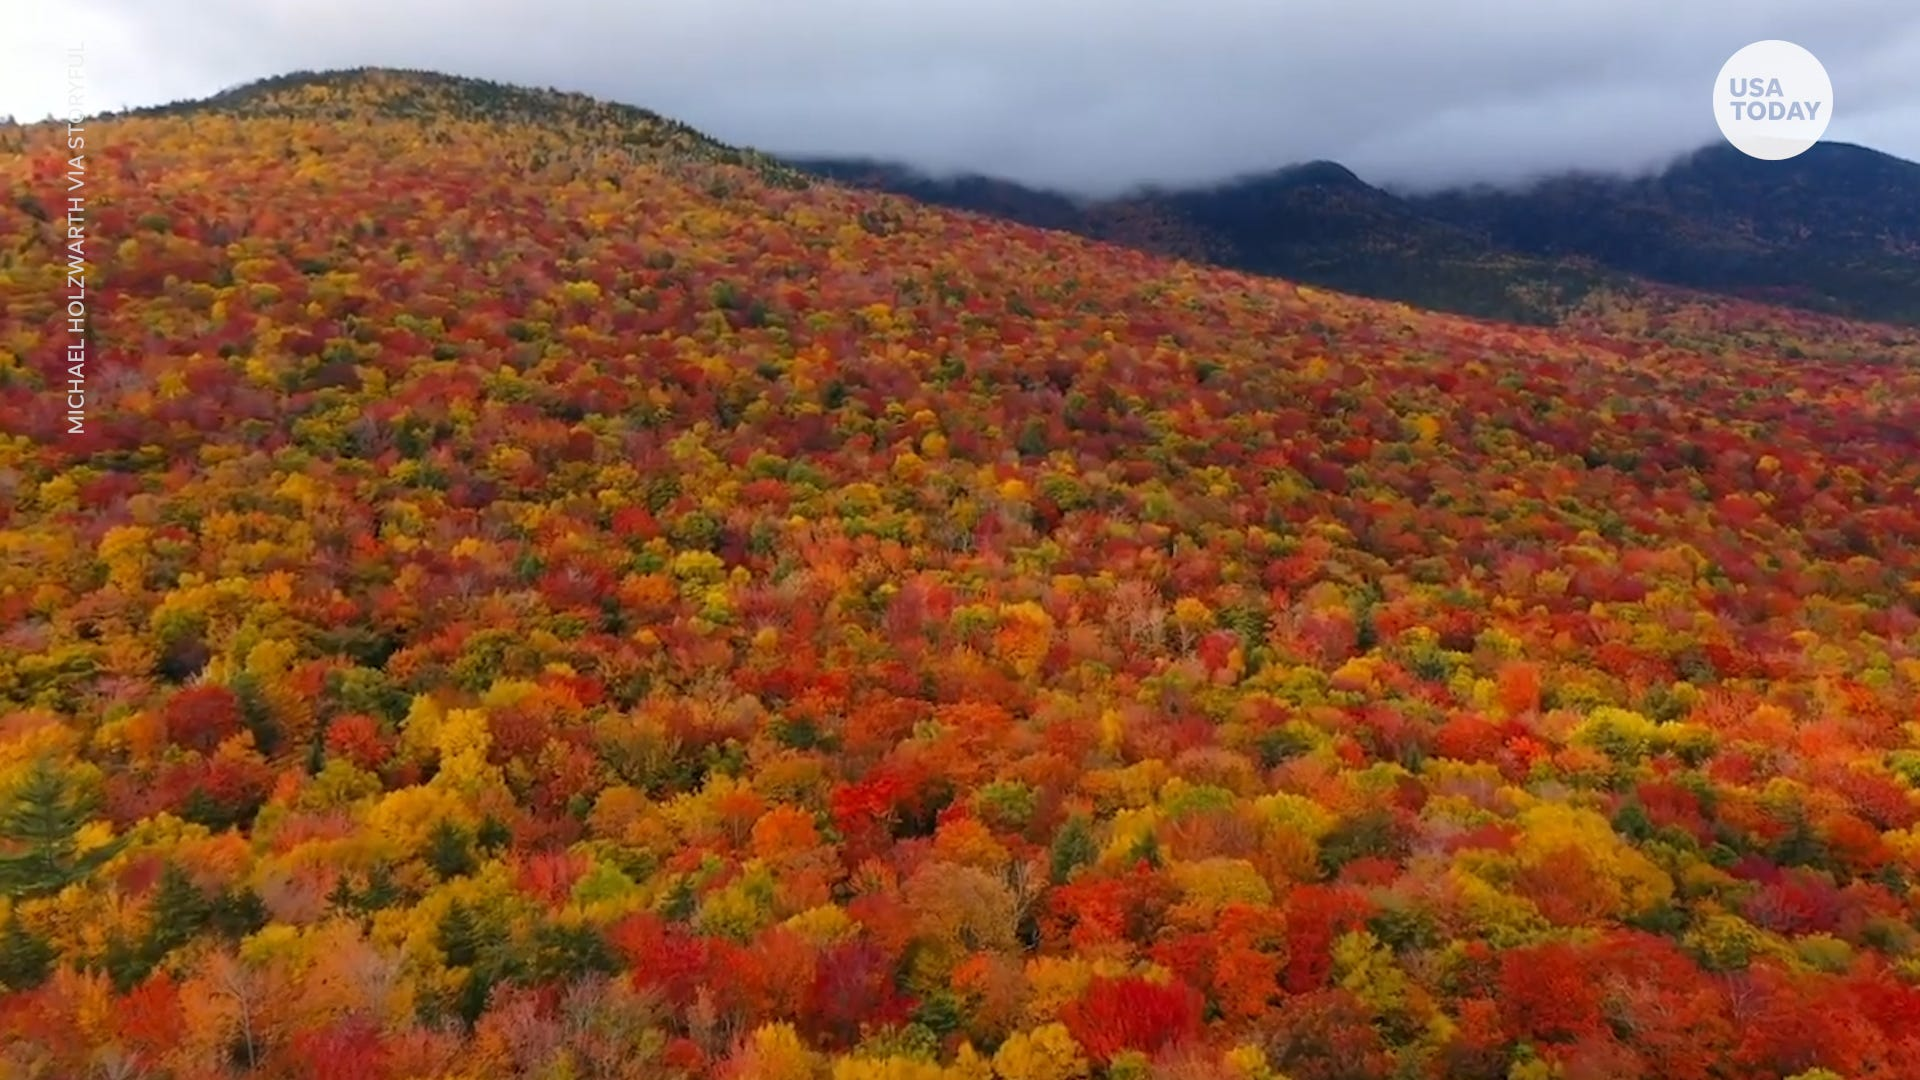 Fall foliage is beautiful and vibrant around the White Mountain range in New Hampshire